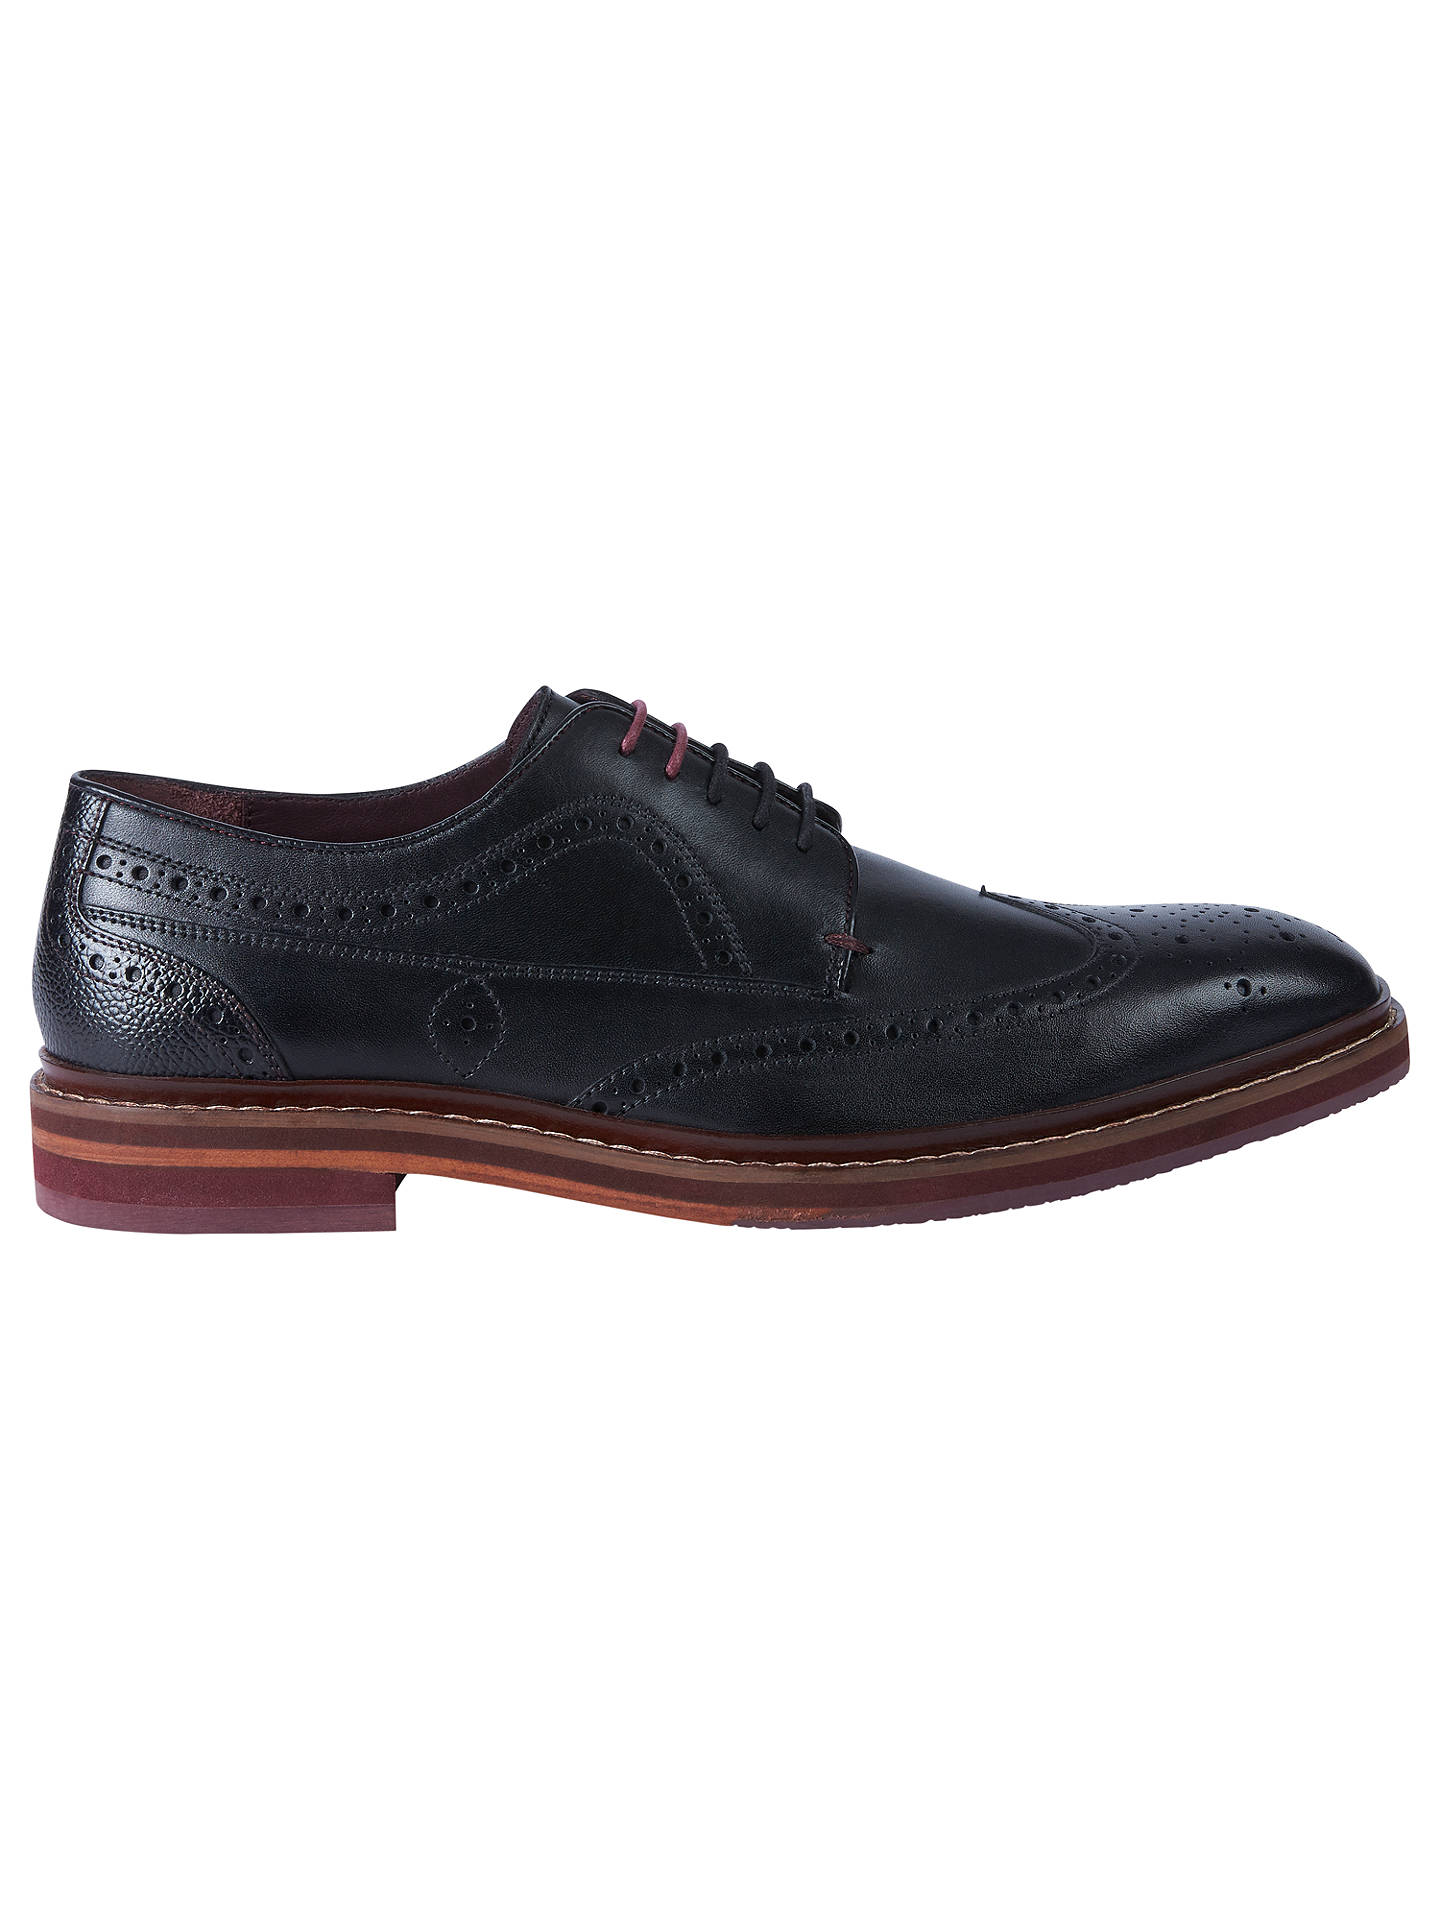 adbf452be170c Ted Baker Gourdon Derby Brogue Shoes at John Lewis   Partners